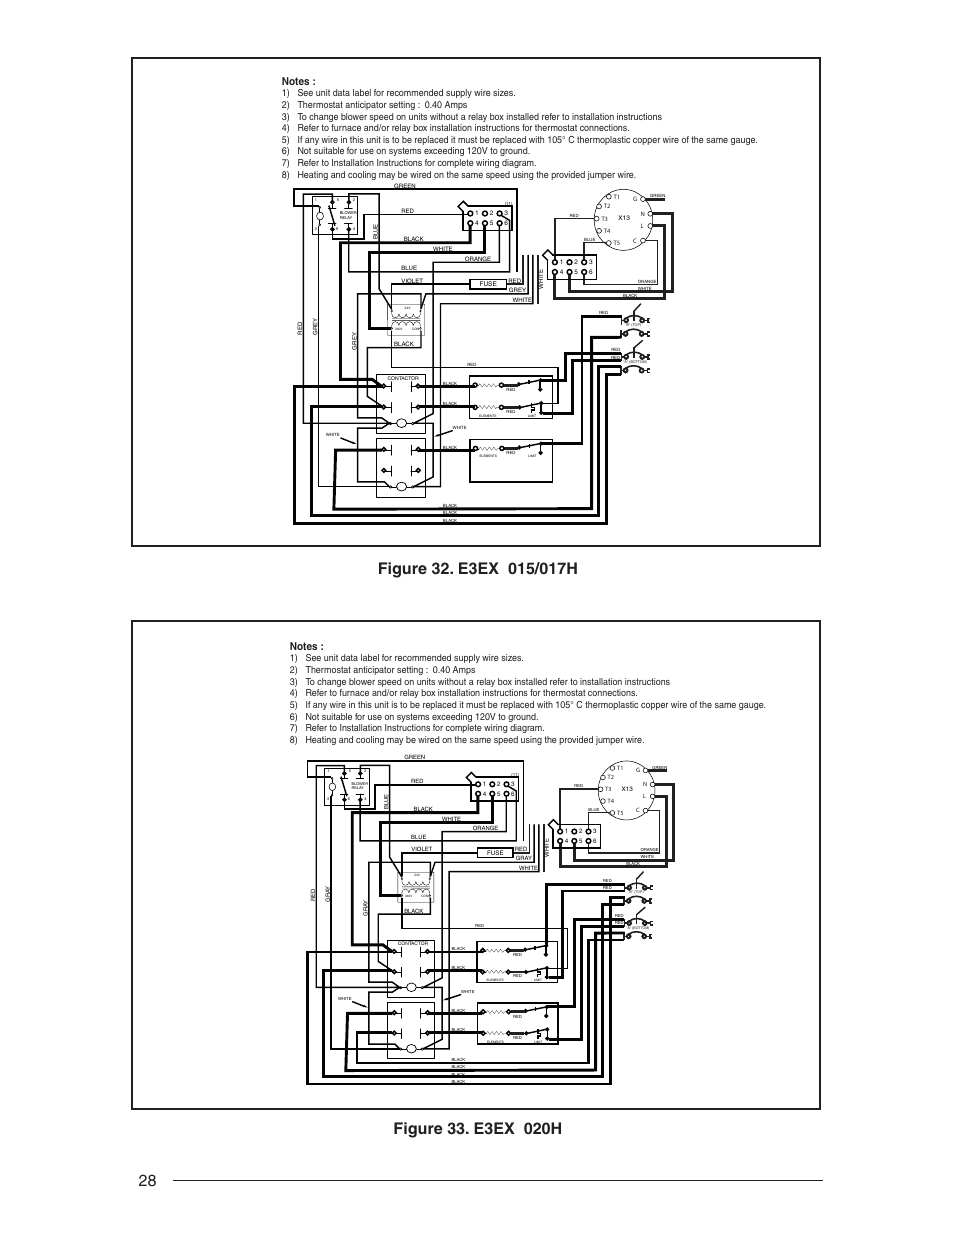 E1eb 015ha Wiring Diagram Detailed Schematics Intertherm Furnace E2eb 015h Diagrams Series And Parallel Circuits Source Model